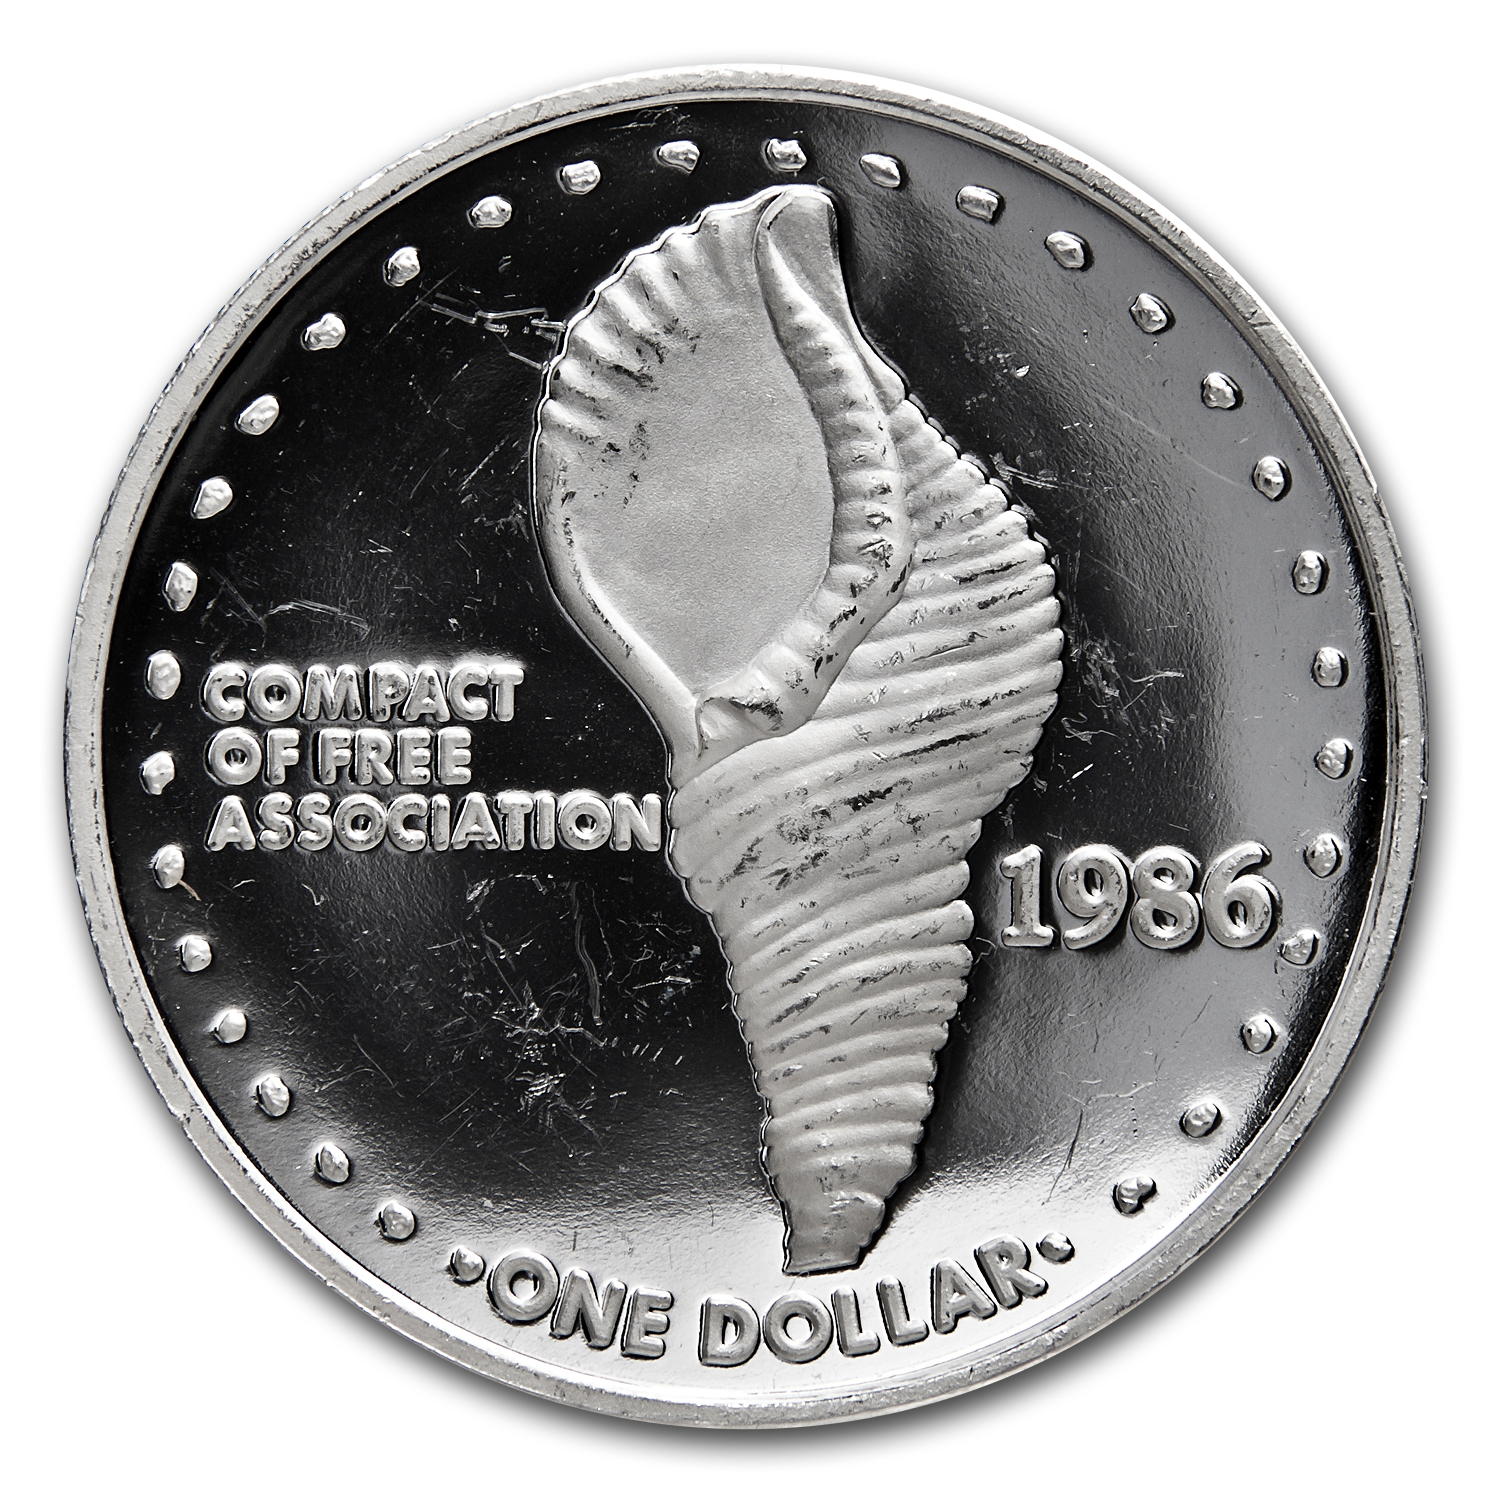 Marshall Islands 1986 One Dollar Silver Proof